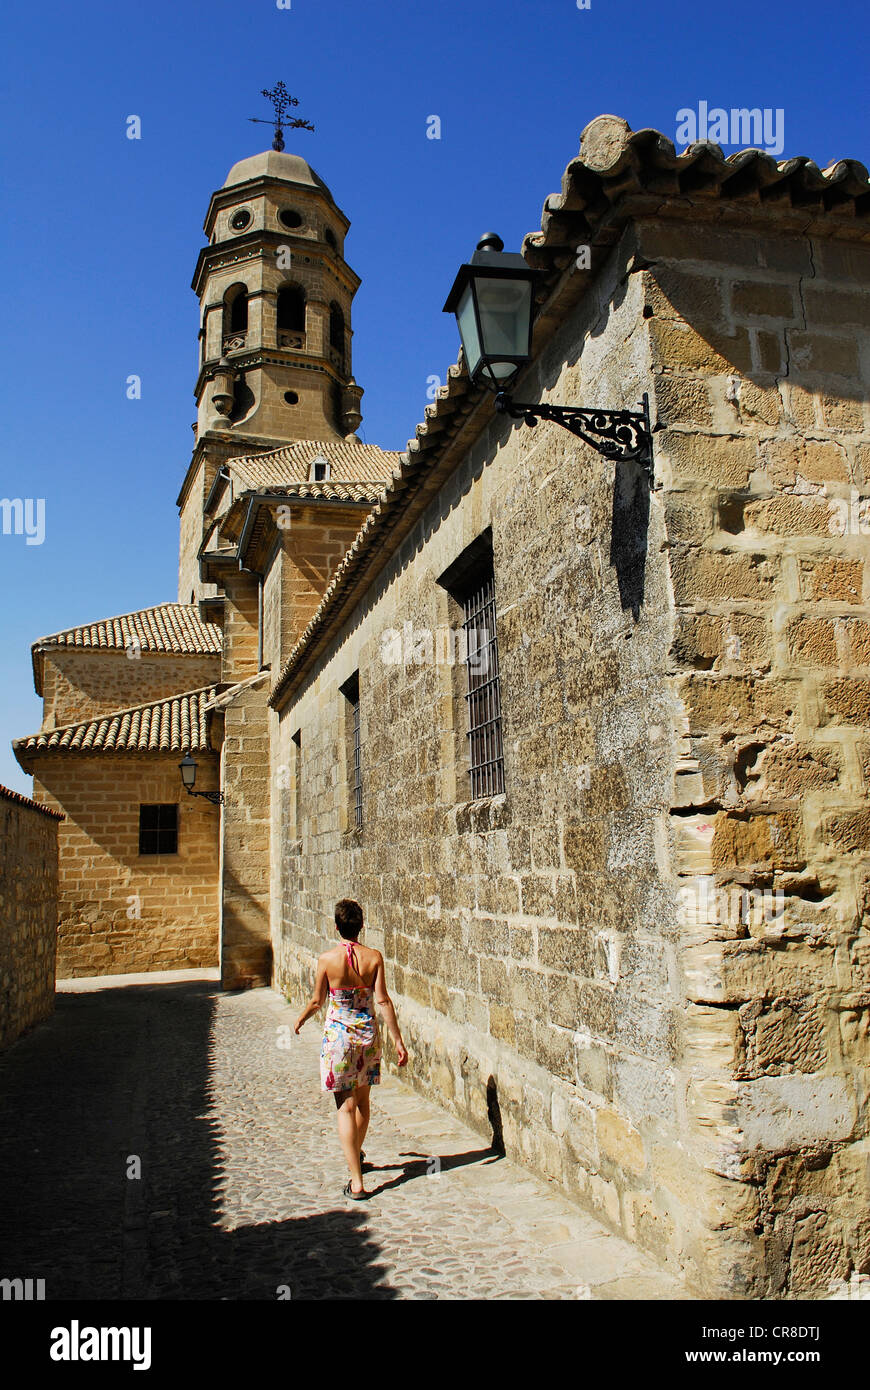 Spain, Andalusia, province of Jaen, Baeza, city UNESCO World Heritage, a narrow street of the historic center and - Stock Image